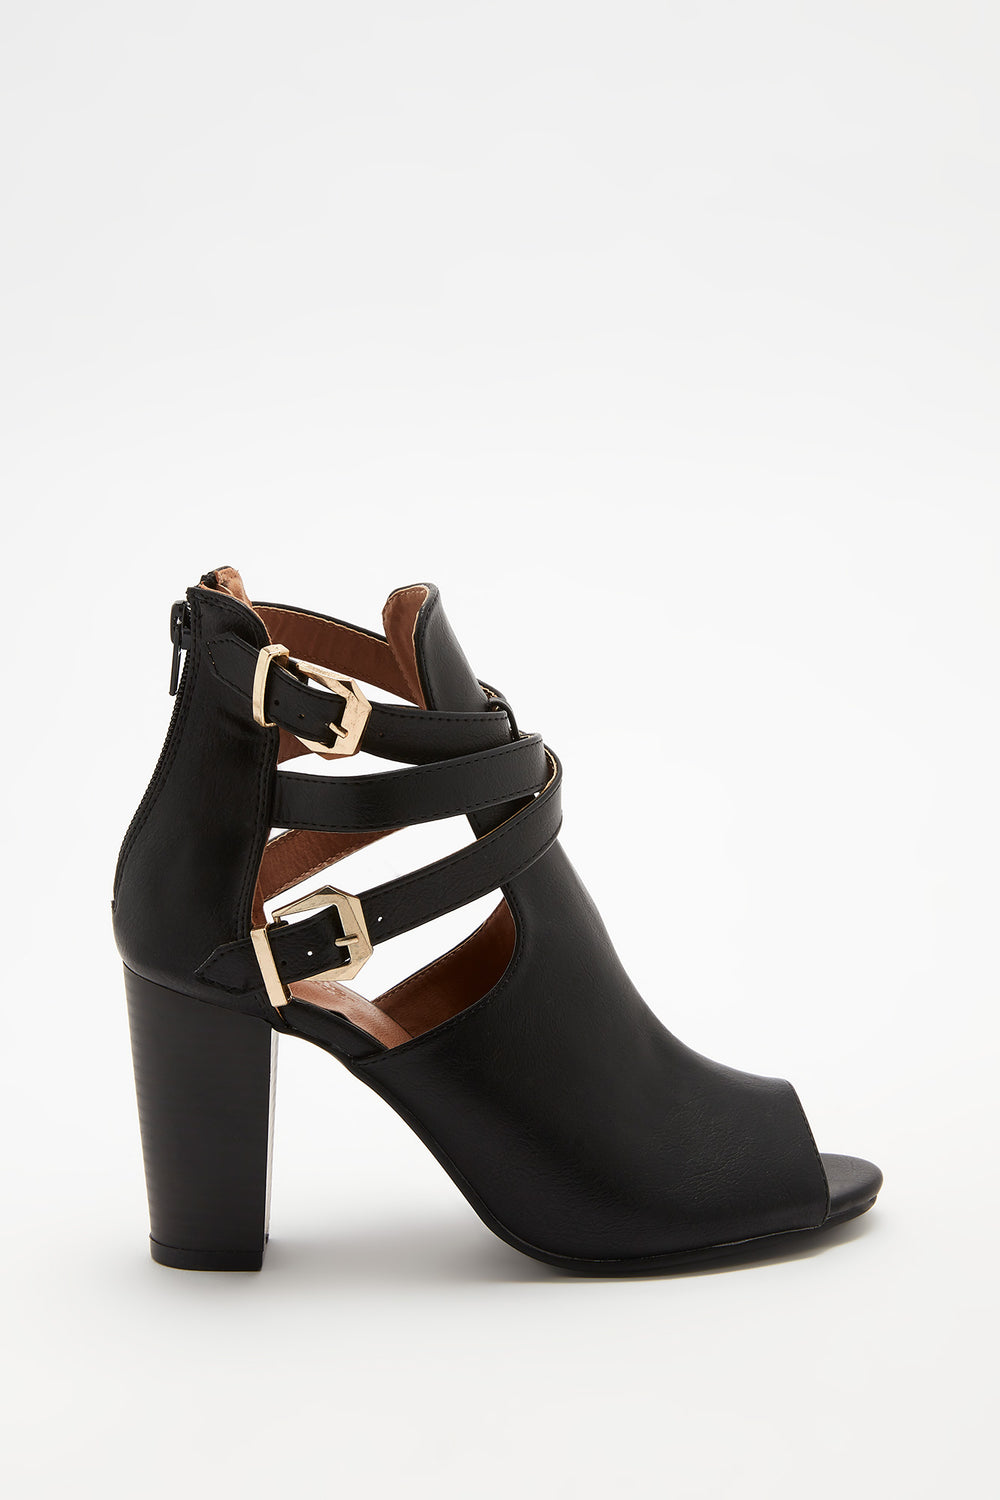 Faux-Leather Peep Toe Ankle Bootie Black